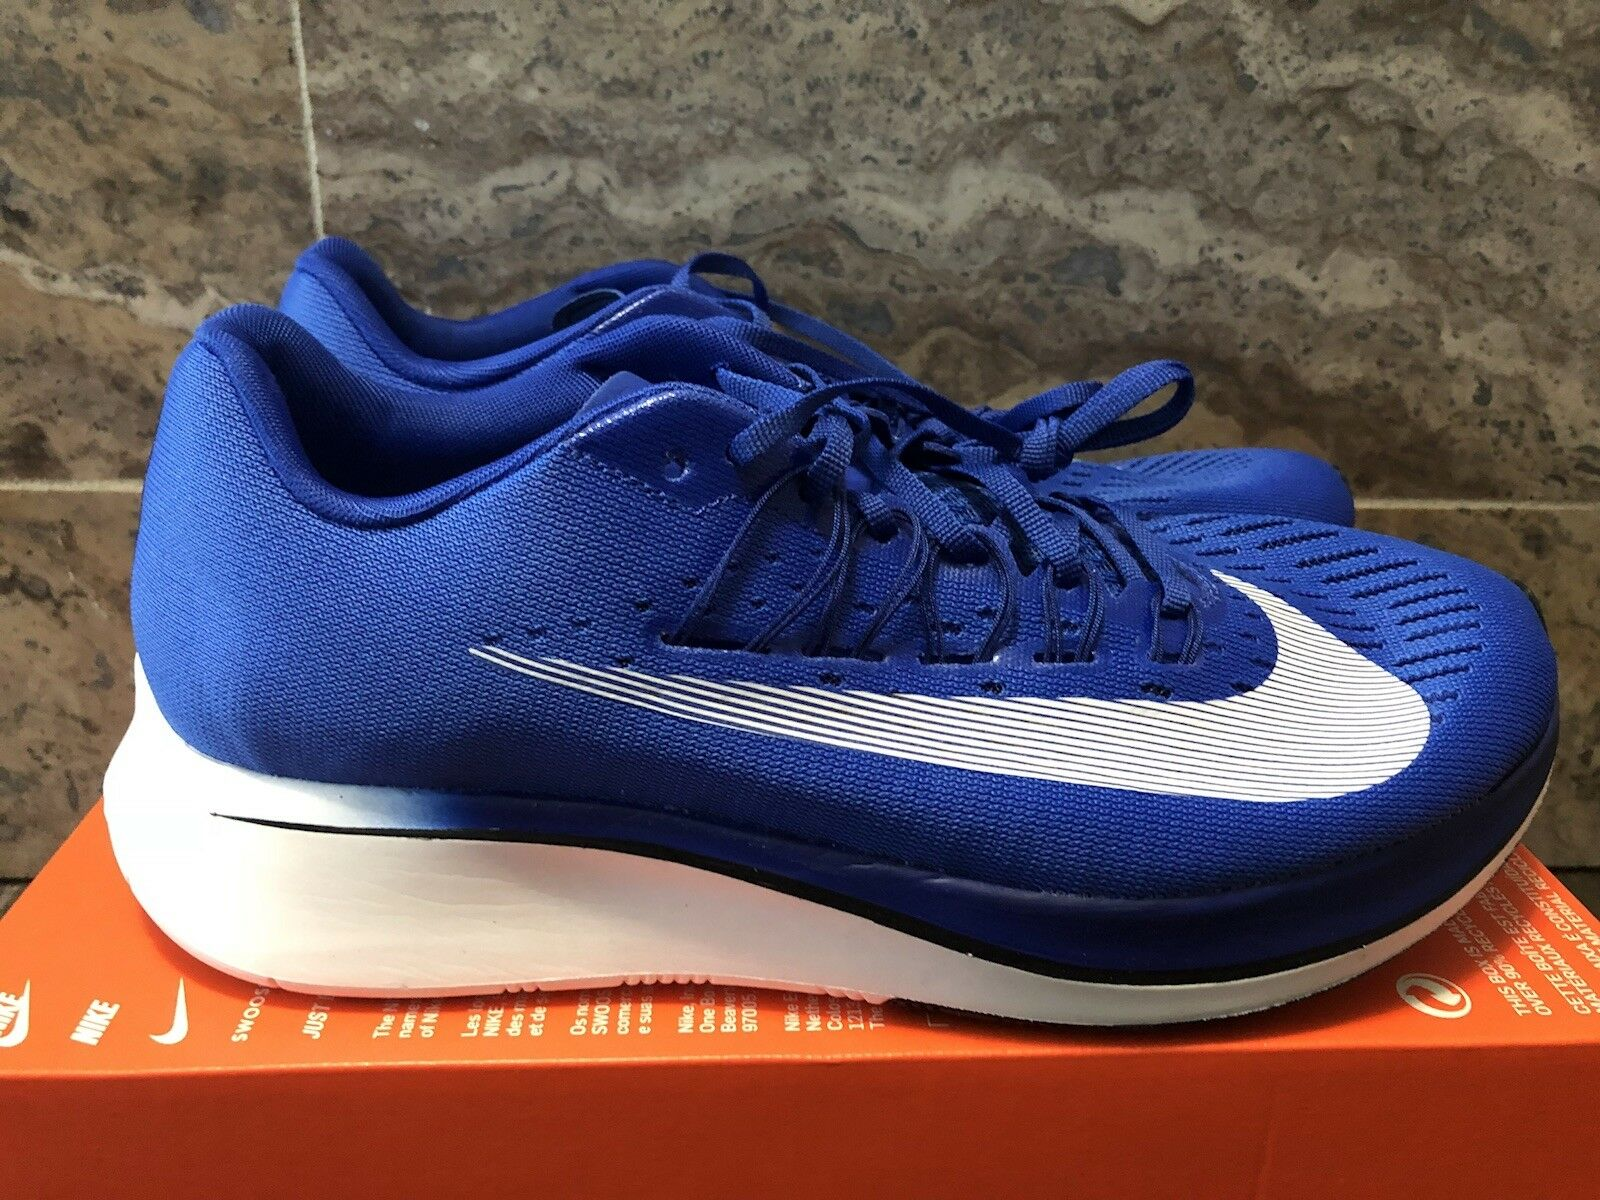 MEN'S NIKE ZOOM FLY HYPER SIZE 11 ROYAL blueE WHITE (880848 411)